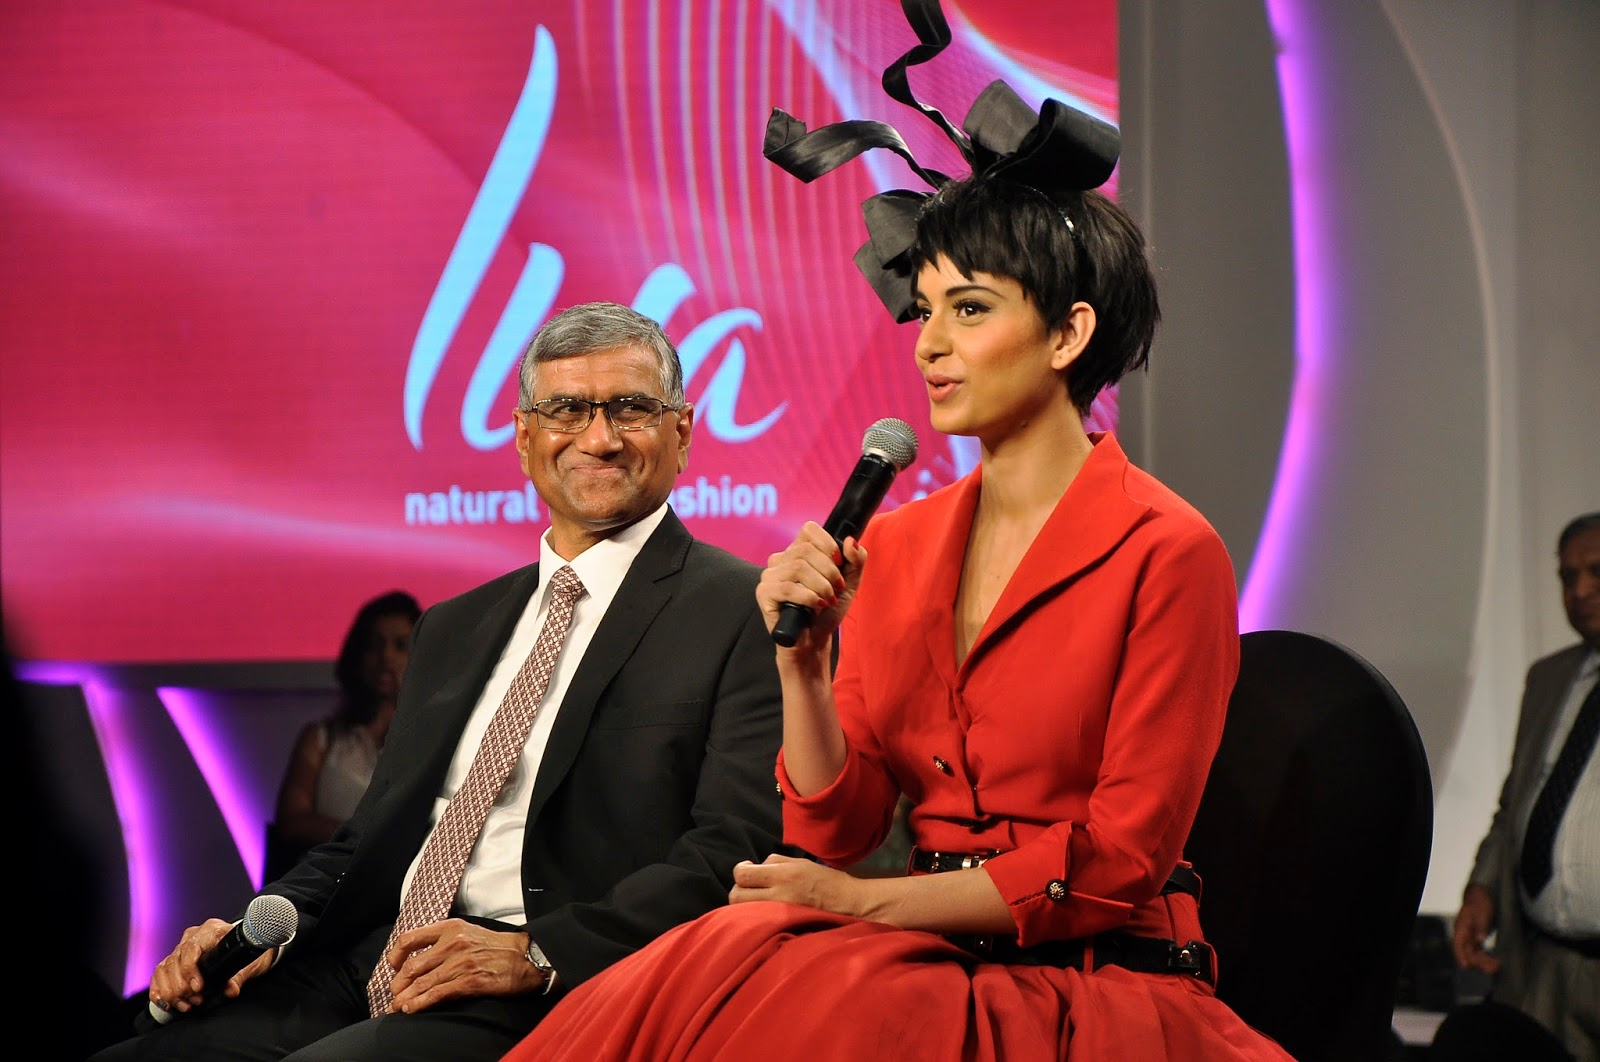 Mr K.K. Maheshwari, Managing Director - Grasim Industries and Group Director - Textiles and Kangana Ranaut briefing the media on the launch of LIVA